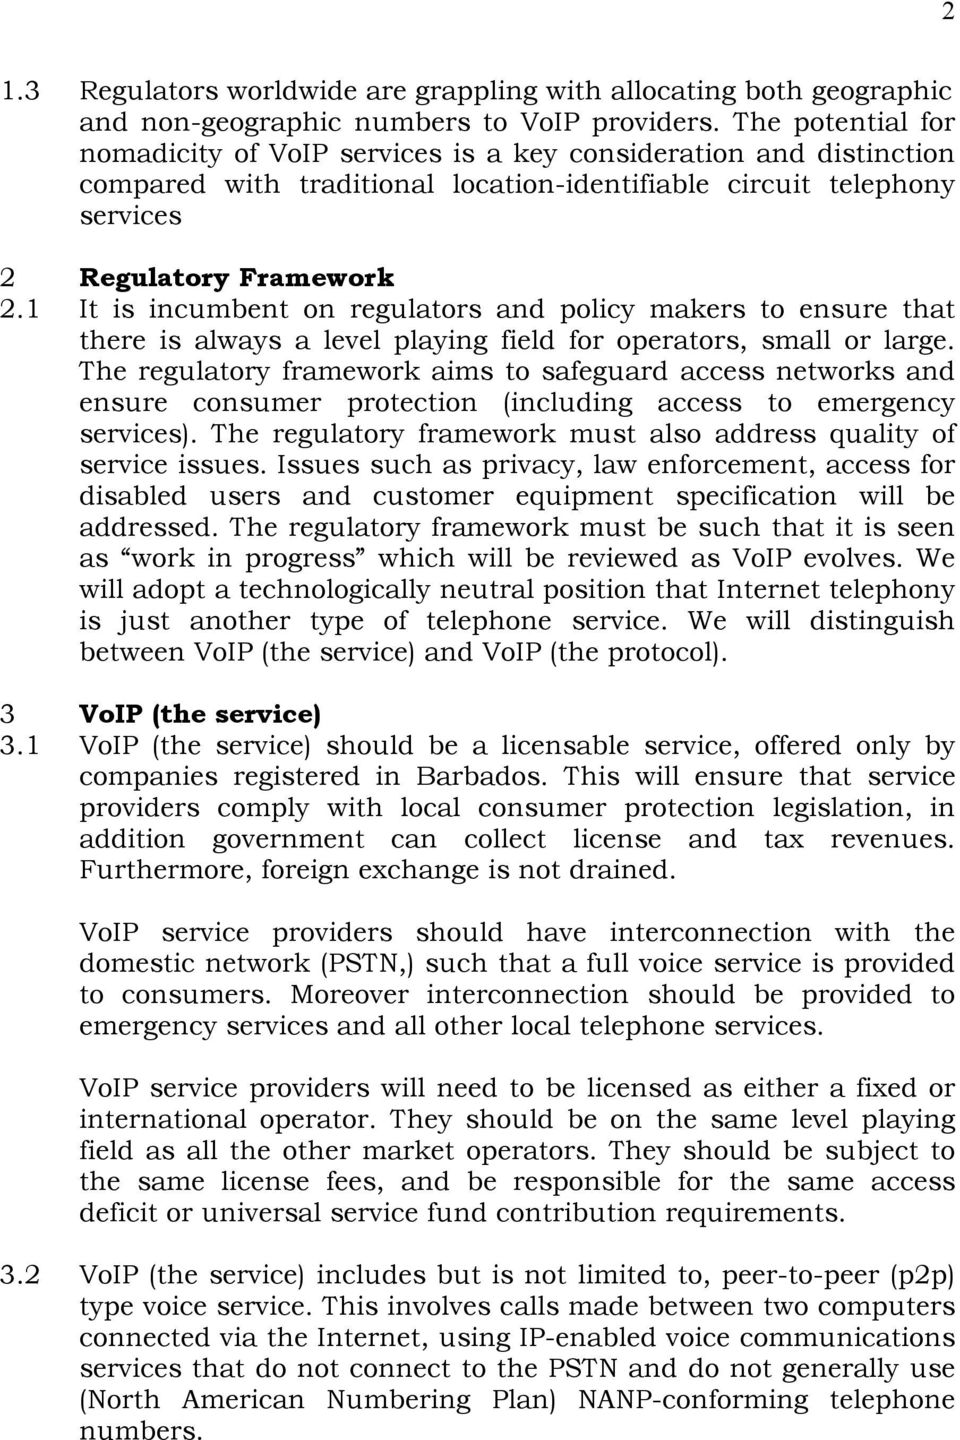 1 It is incumbent on regulators and policy makers to ensure that there is always a level playing field for operators, small or large.